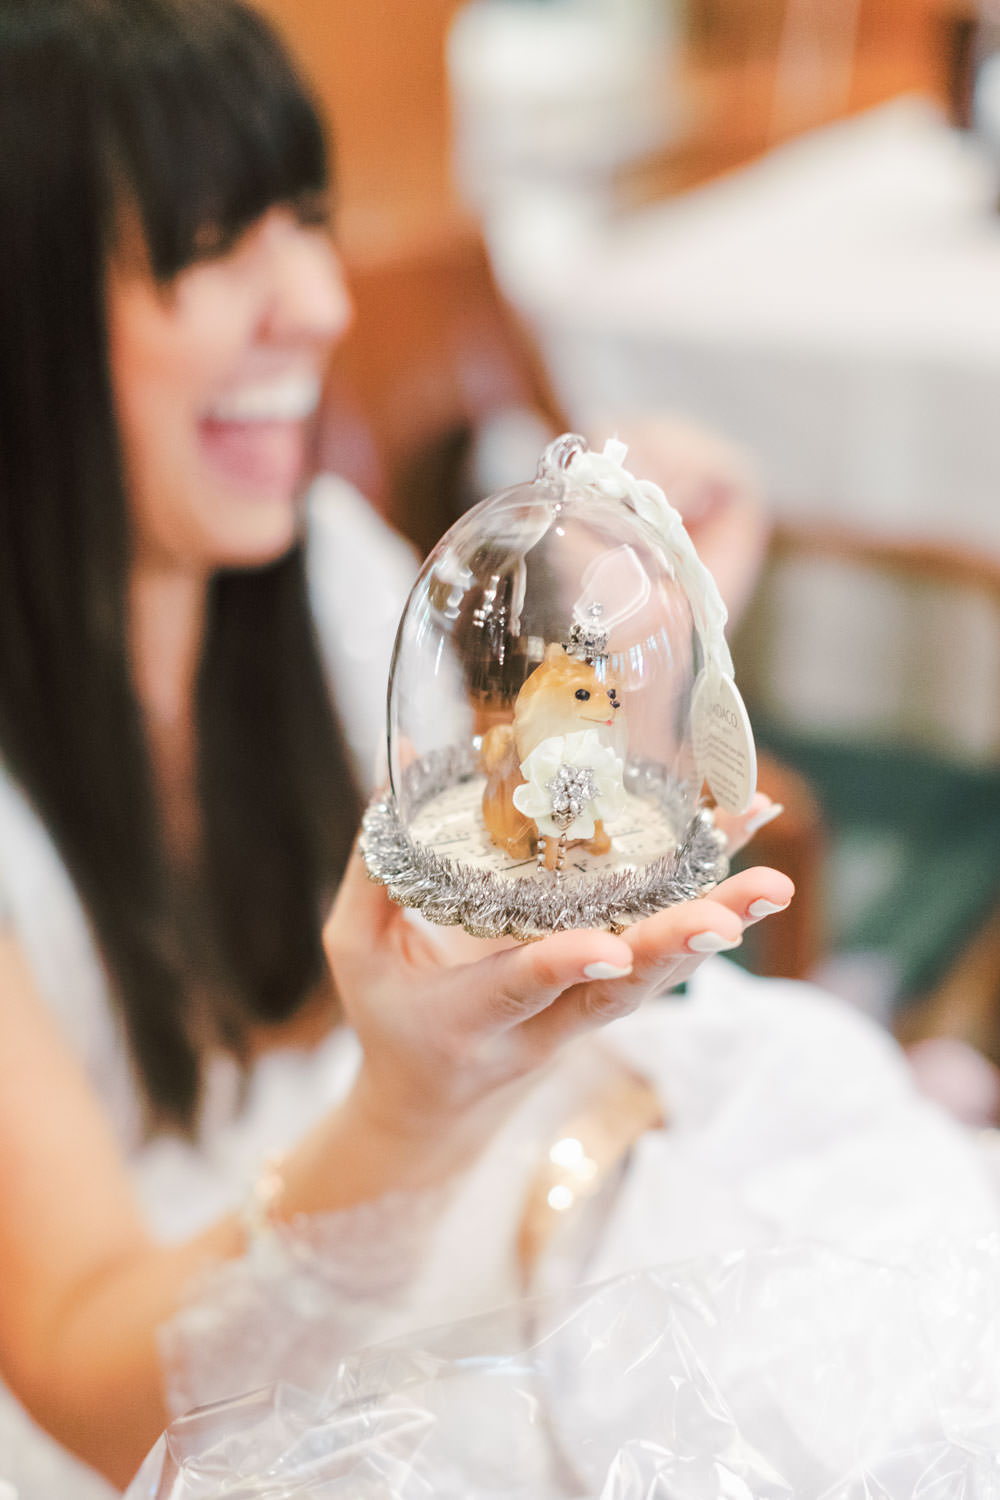 Pomeranian in glass ornament for Christmas, Chic Beverly Hills Hotel Bridal Shower during Christmas time, Cavin Elizabeth Photography